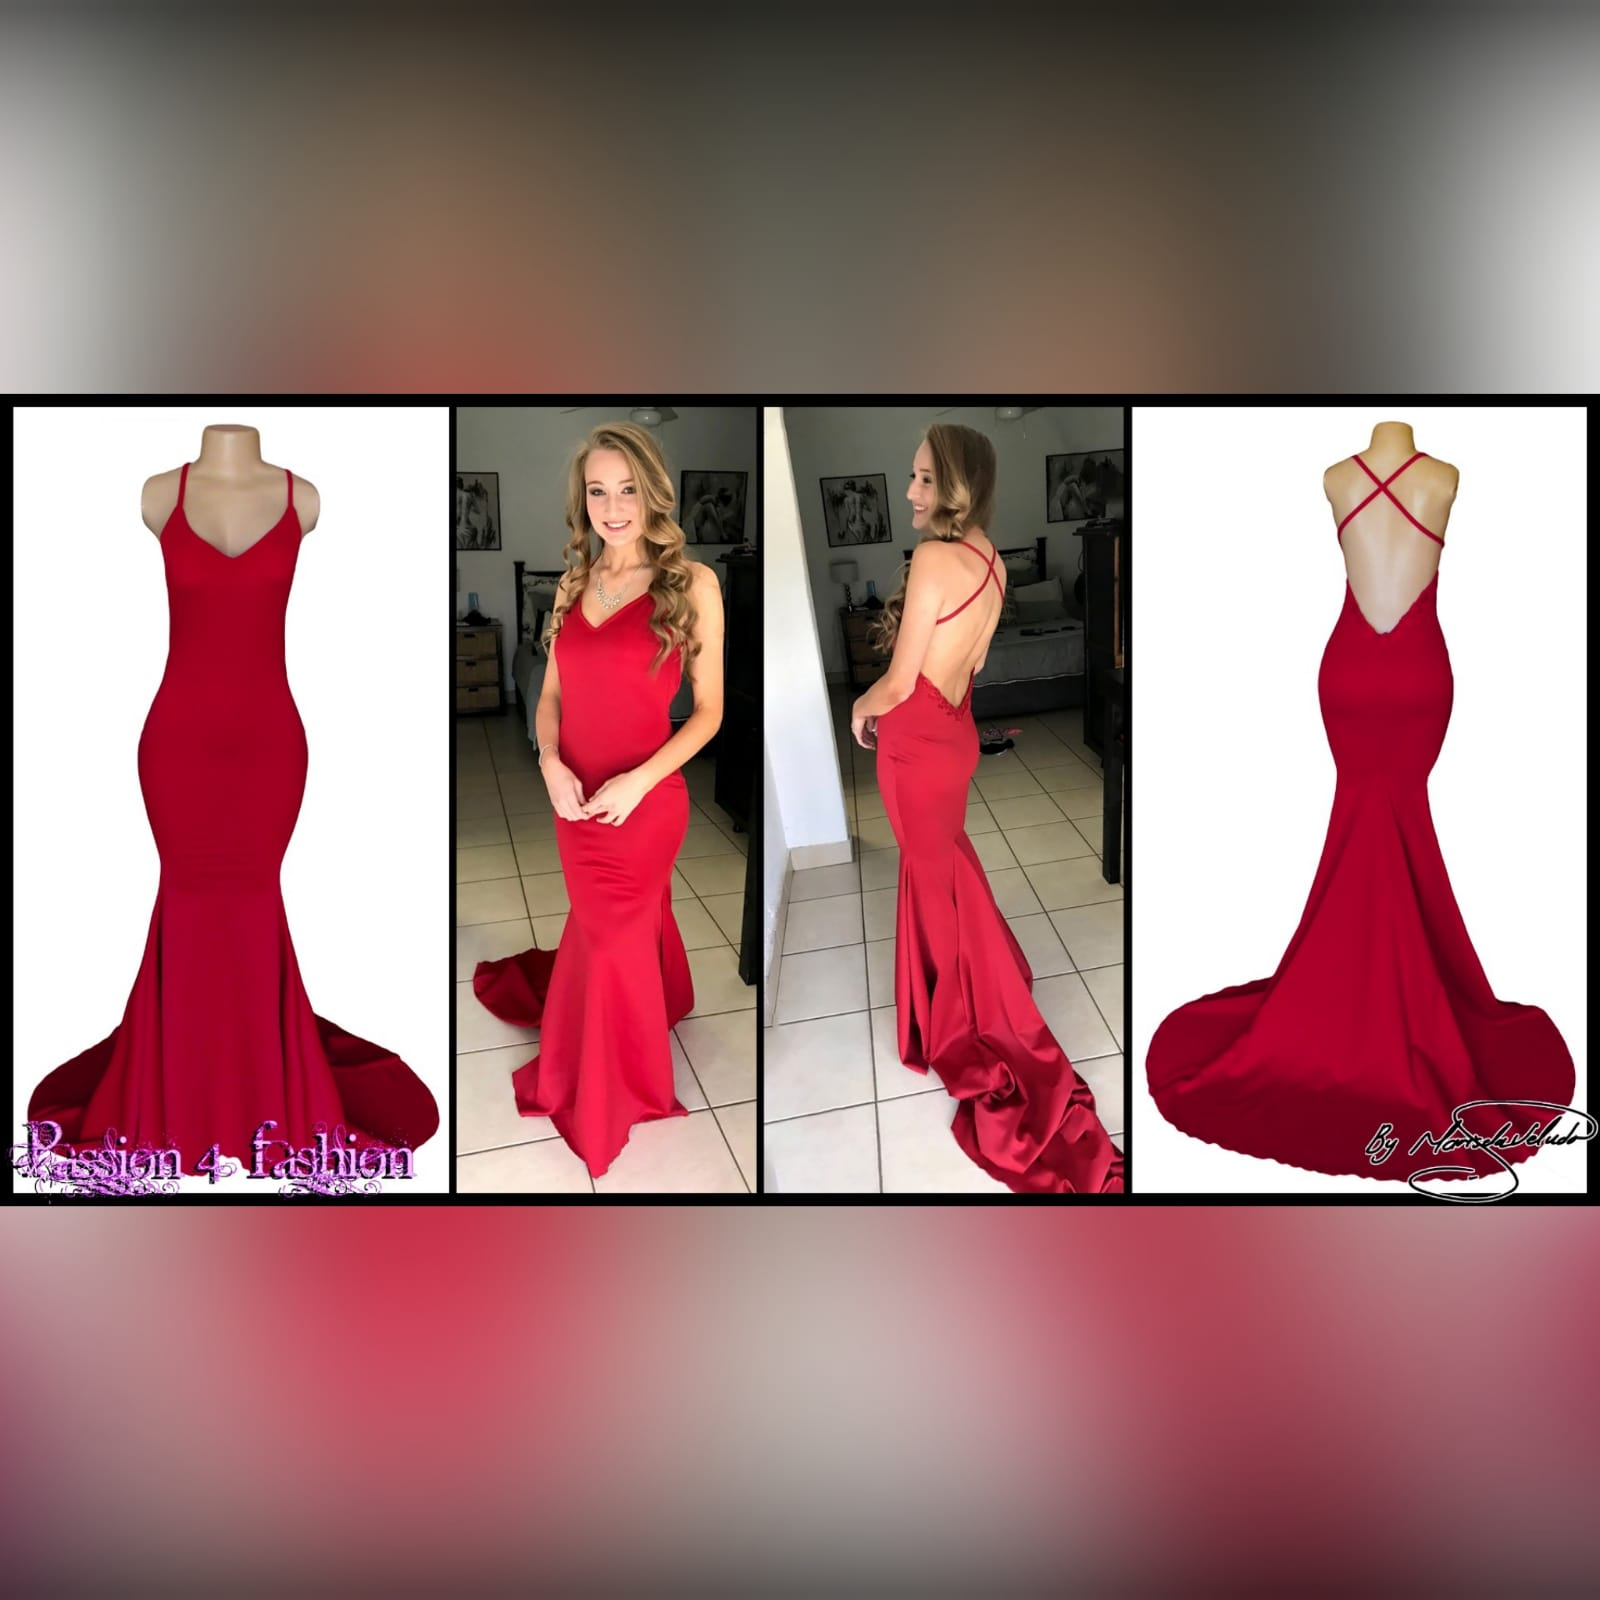 Red soft mermaid prom dress with a v neckline 3 red soft mermaid prom dress with a v neckline, a low open back and thin crossed shoulder straps, with a train.